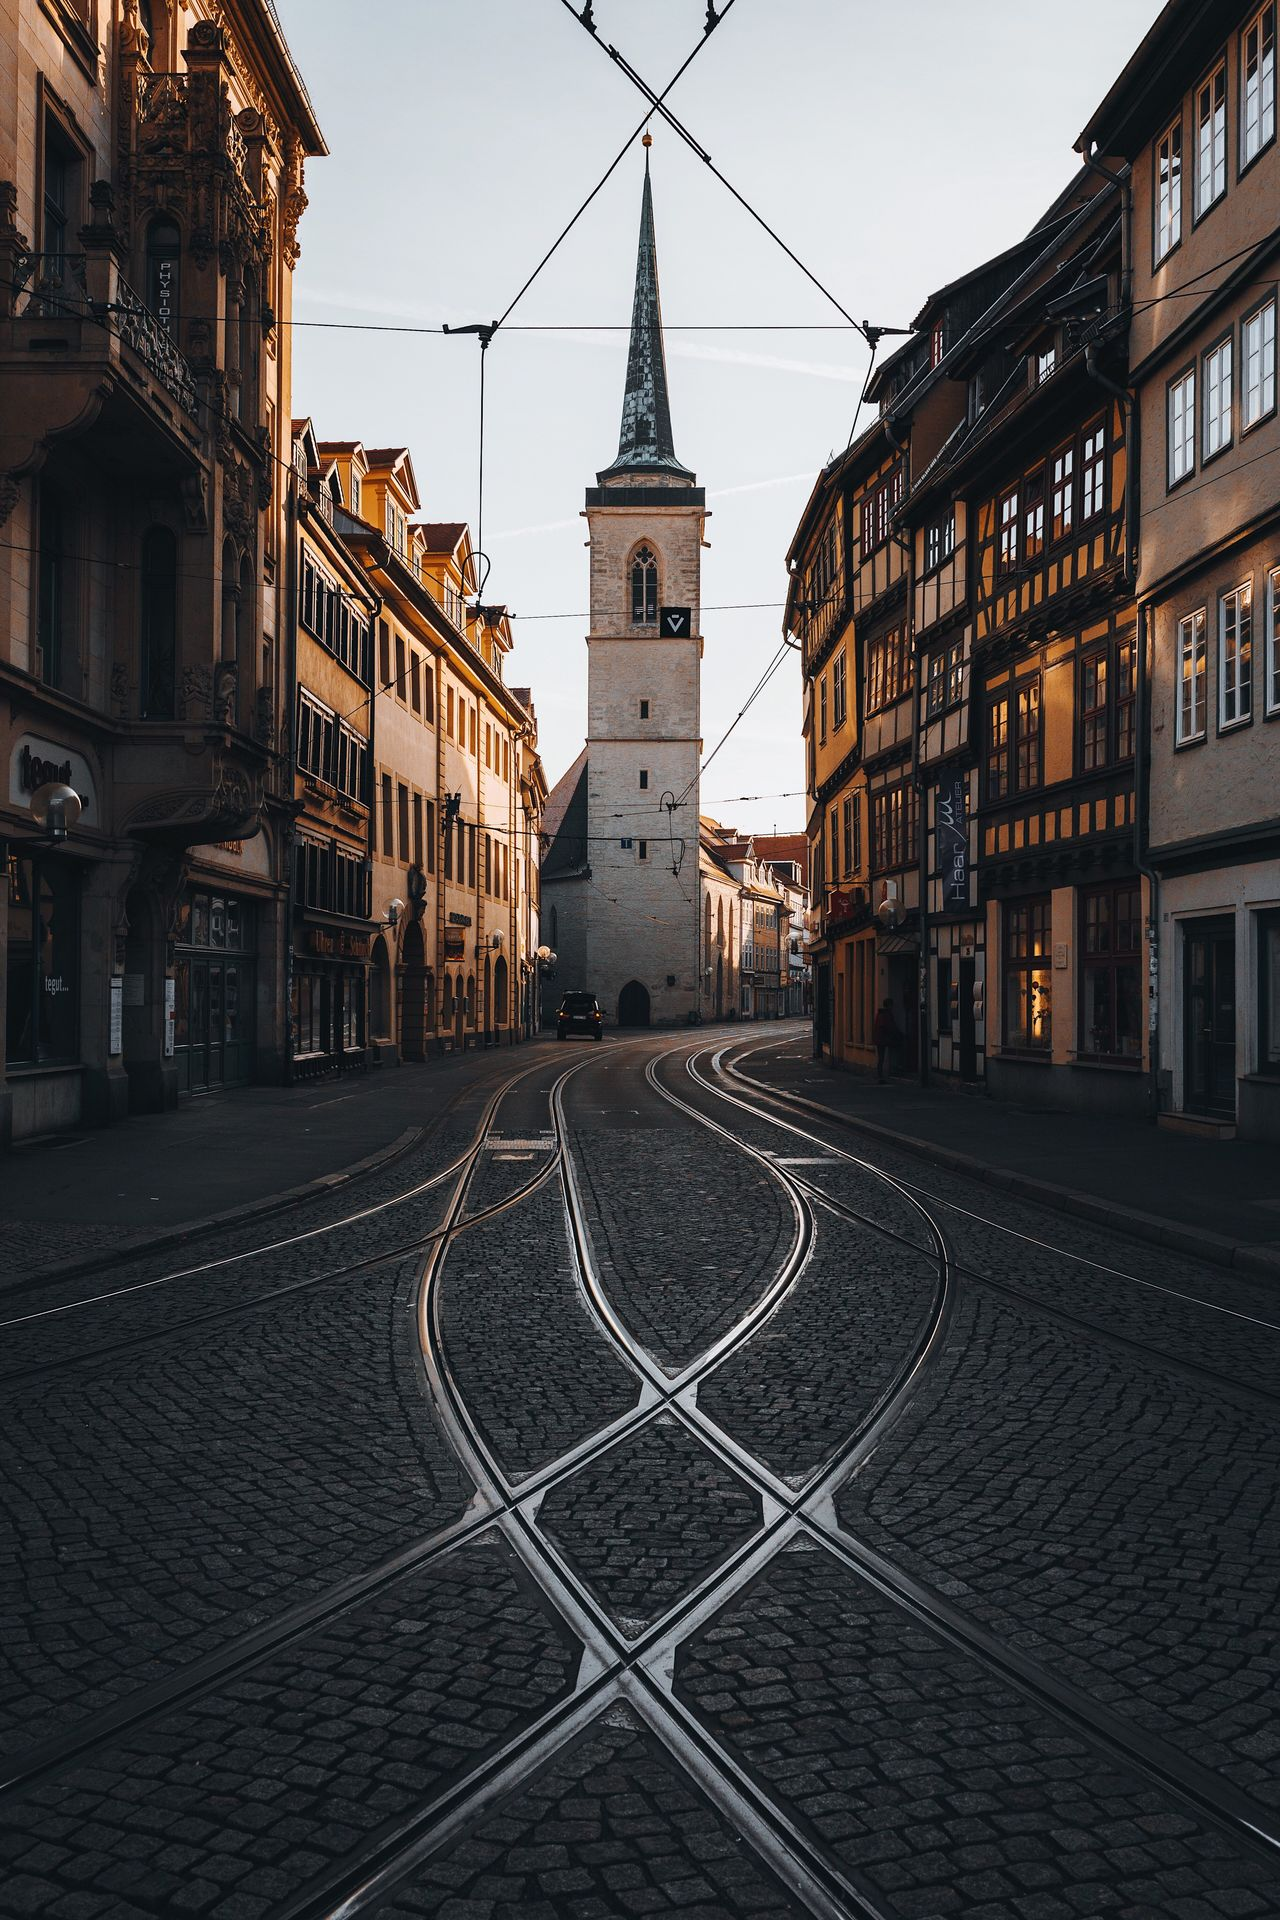 Morning glow. Building Exterior Architecture Built Structure Street Outdoors Day City Cable Clear Sky No People Sky Erfurt